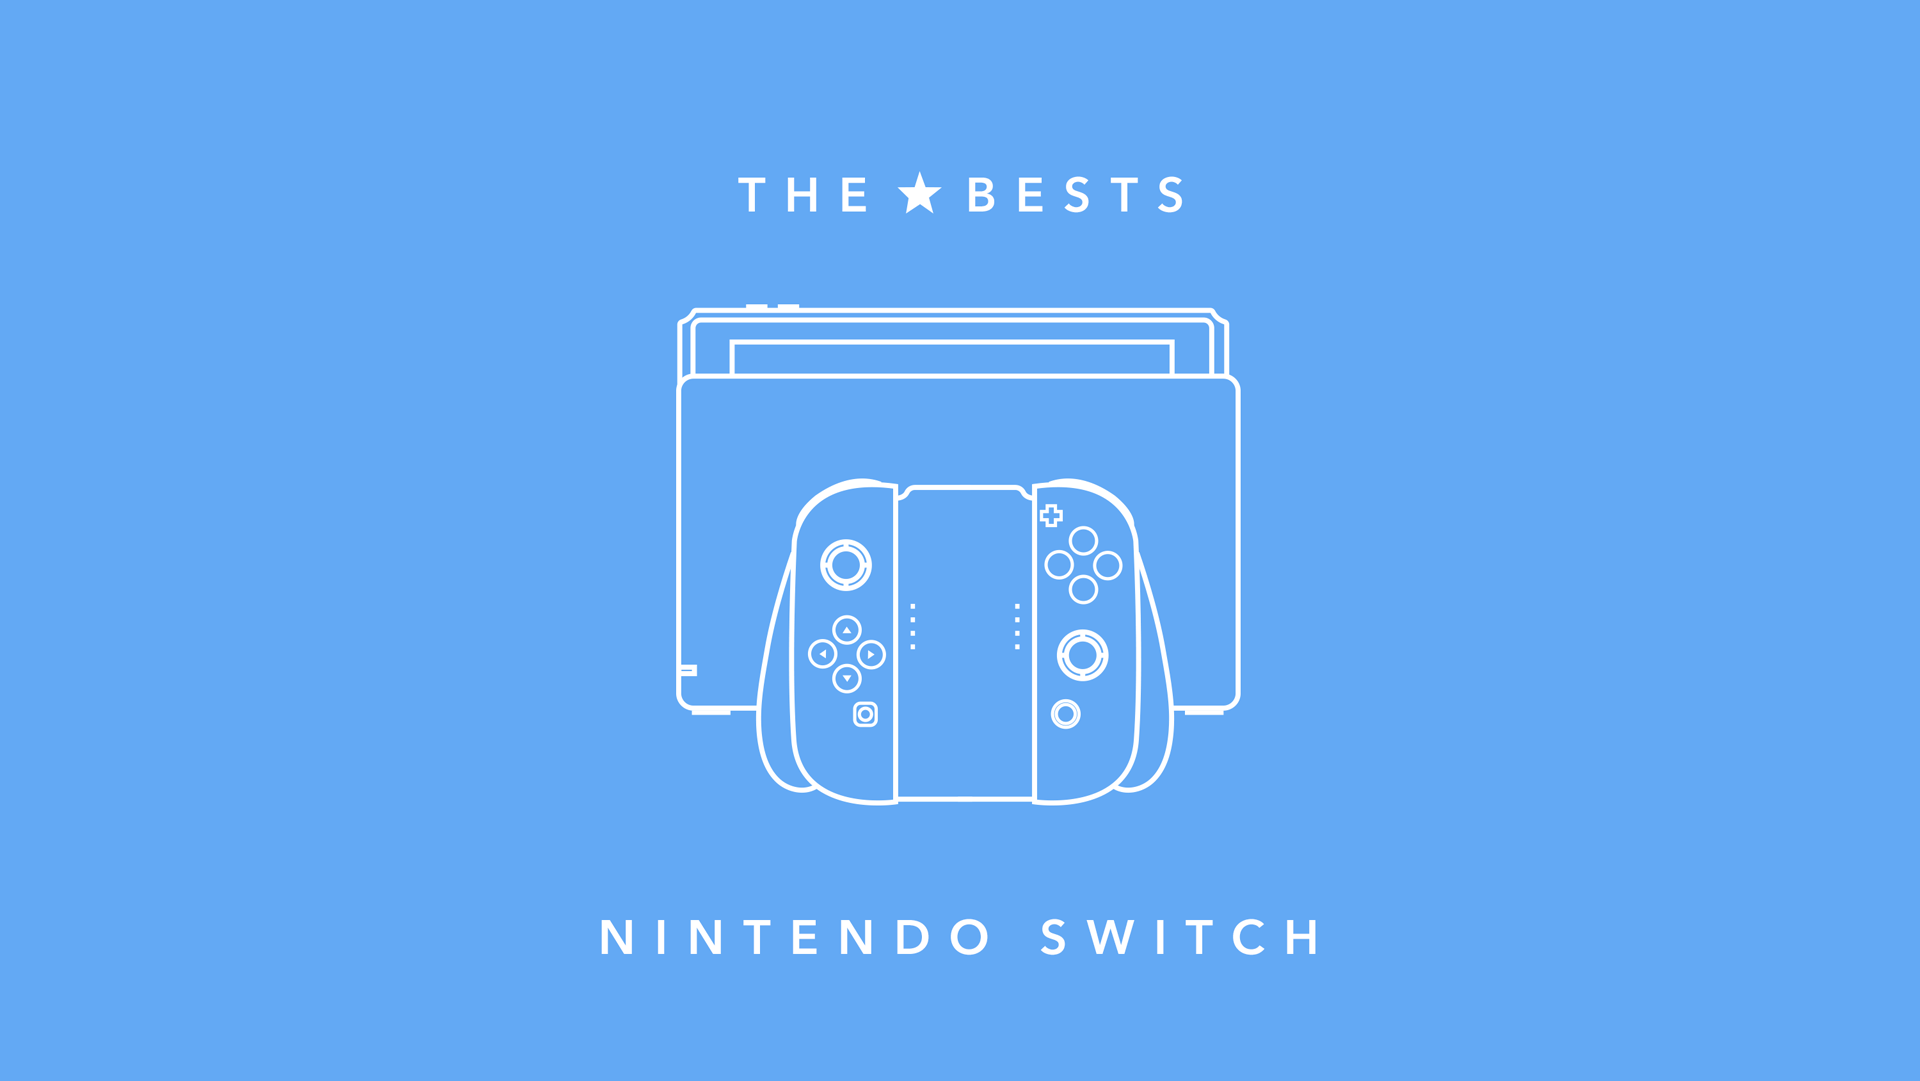 12-bests affiliate editors-picks feature nintendo-switch switch the-bests